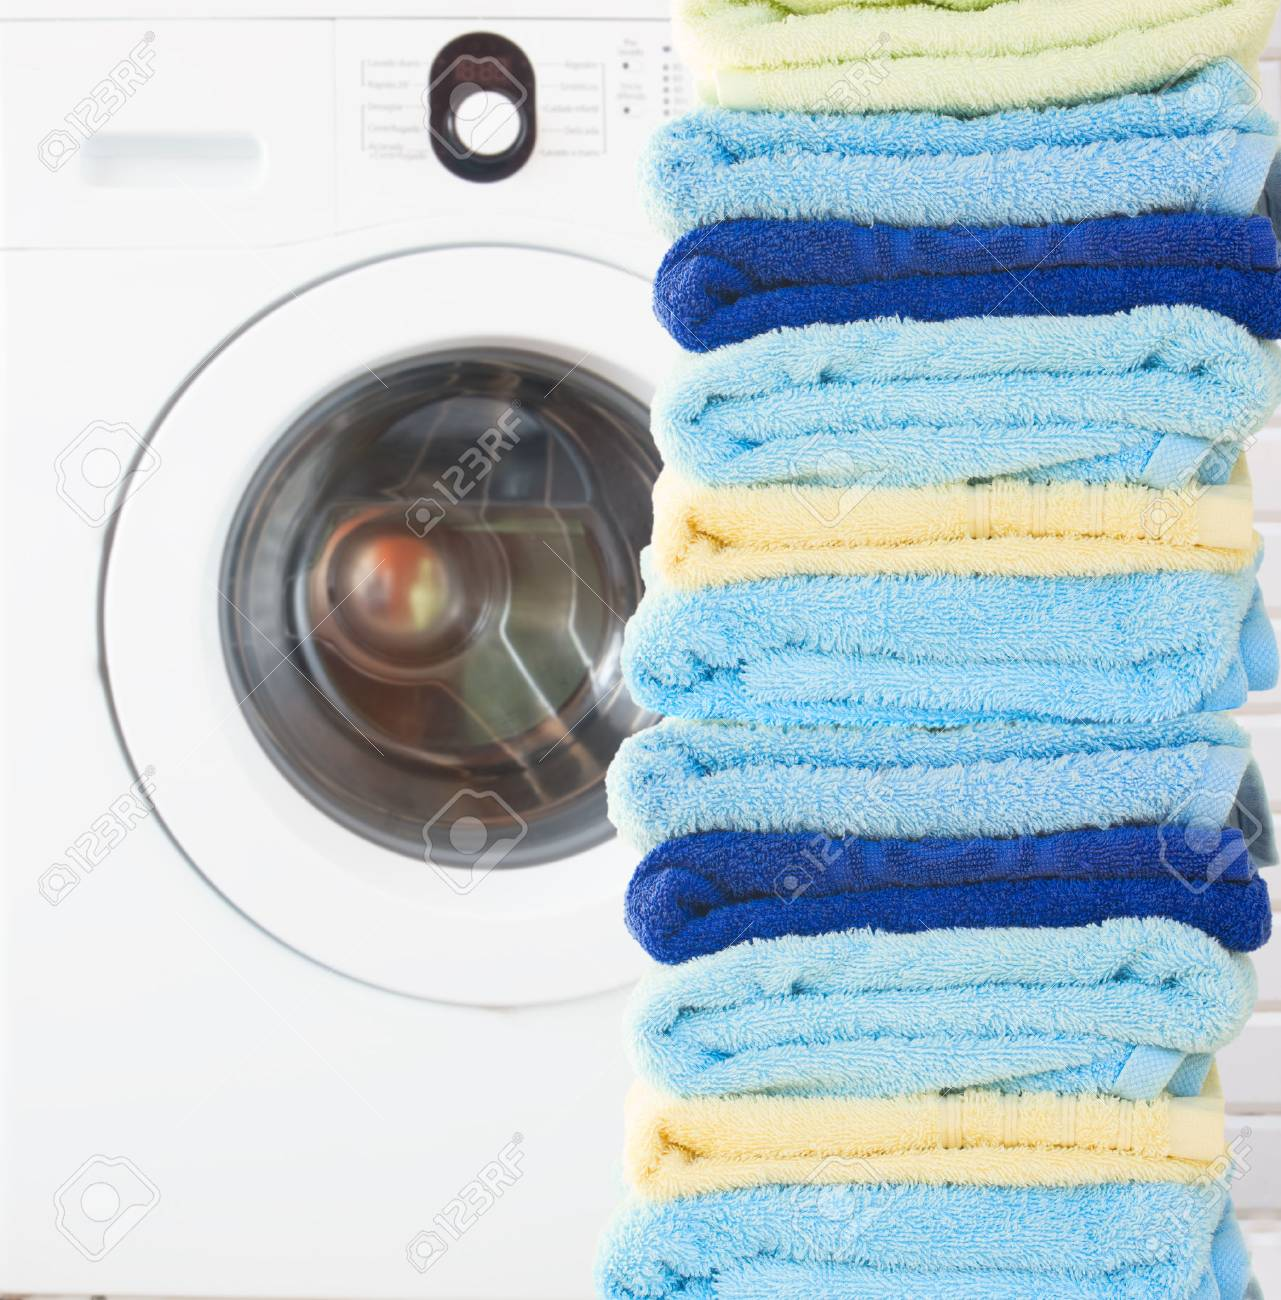 Image result for free images of washing towels